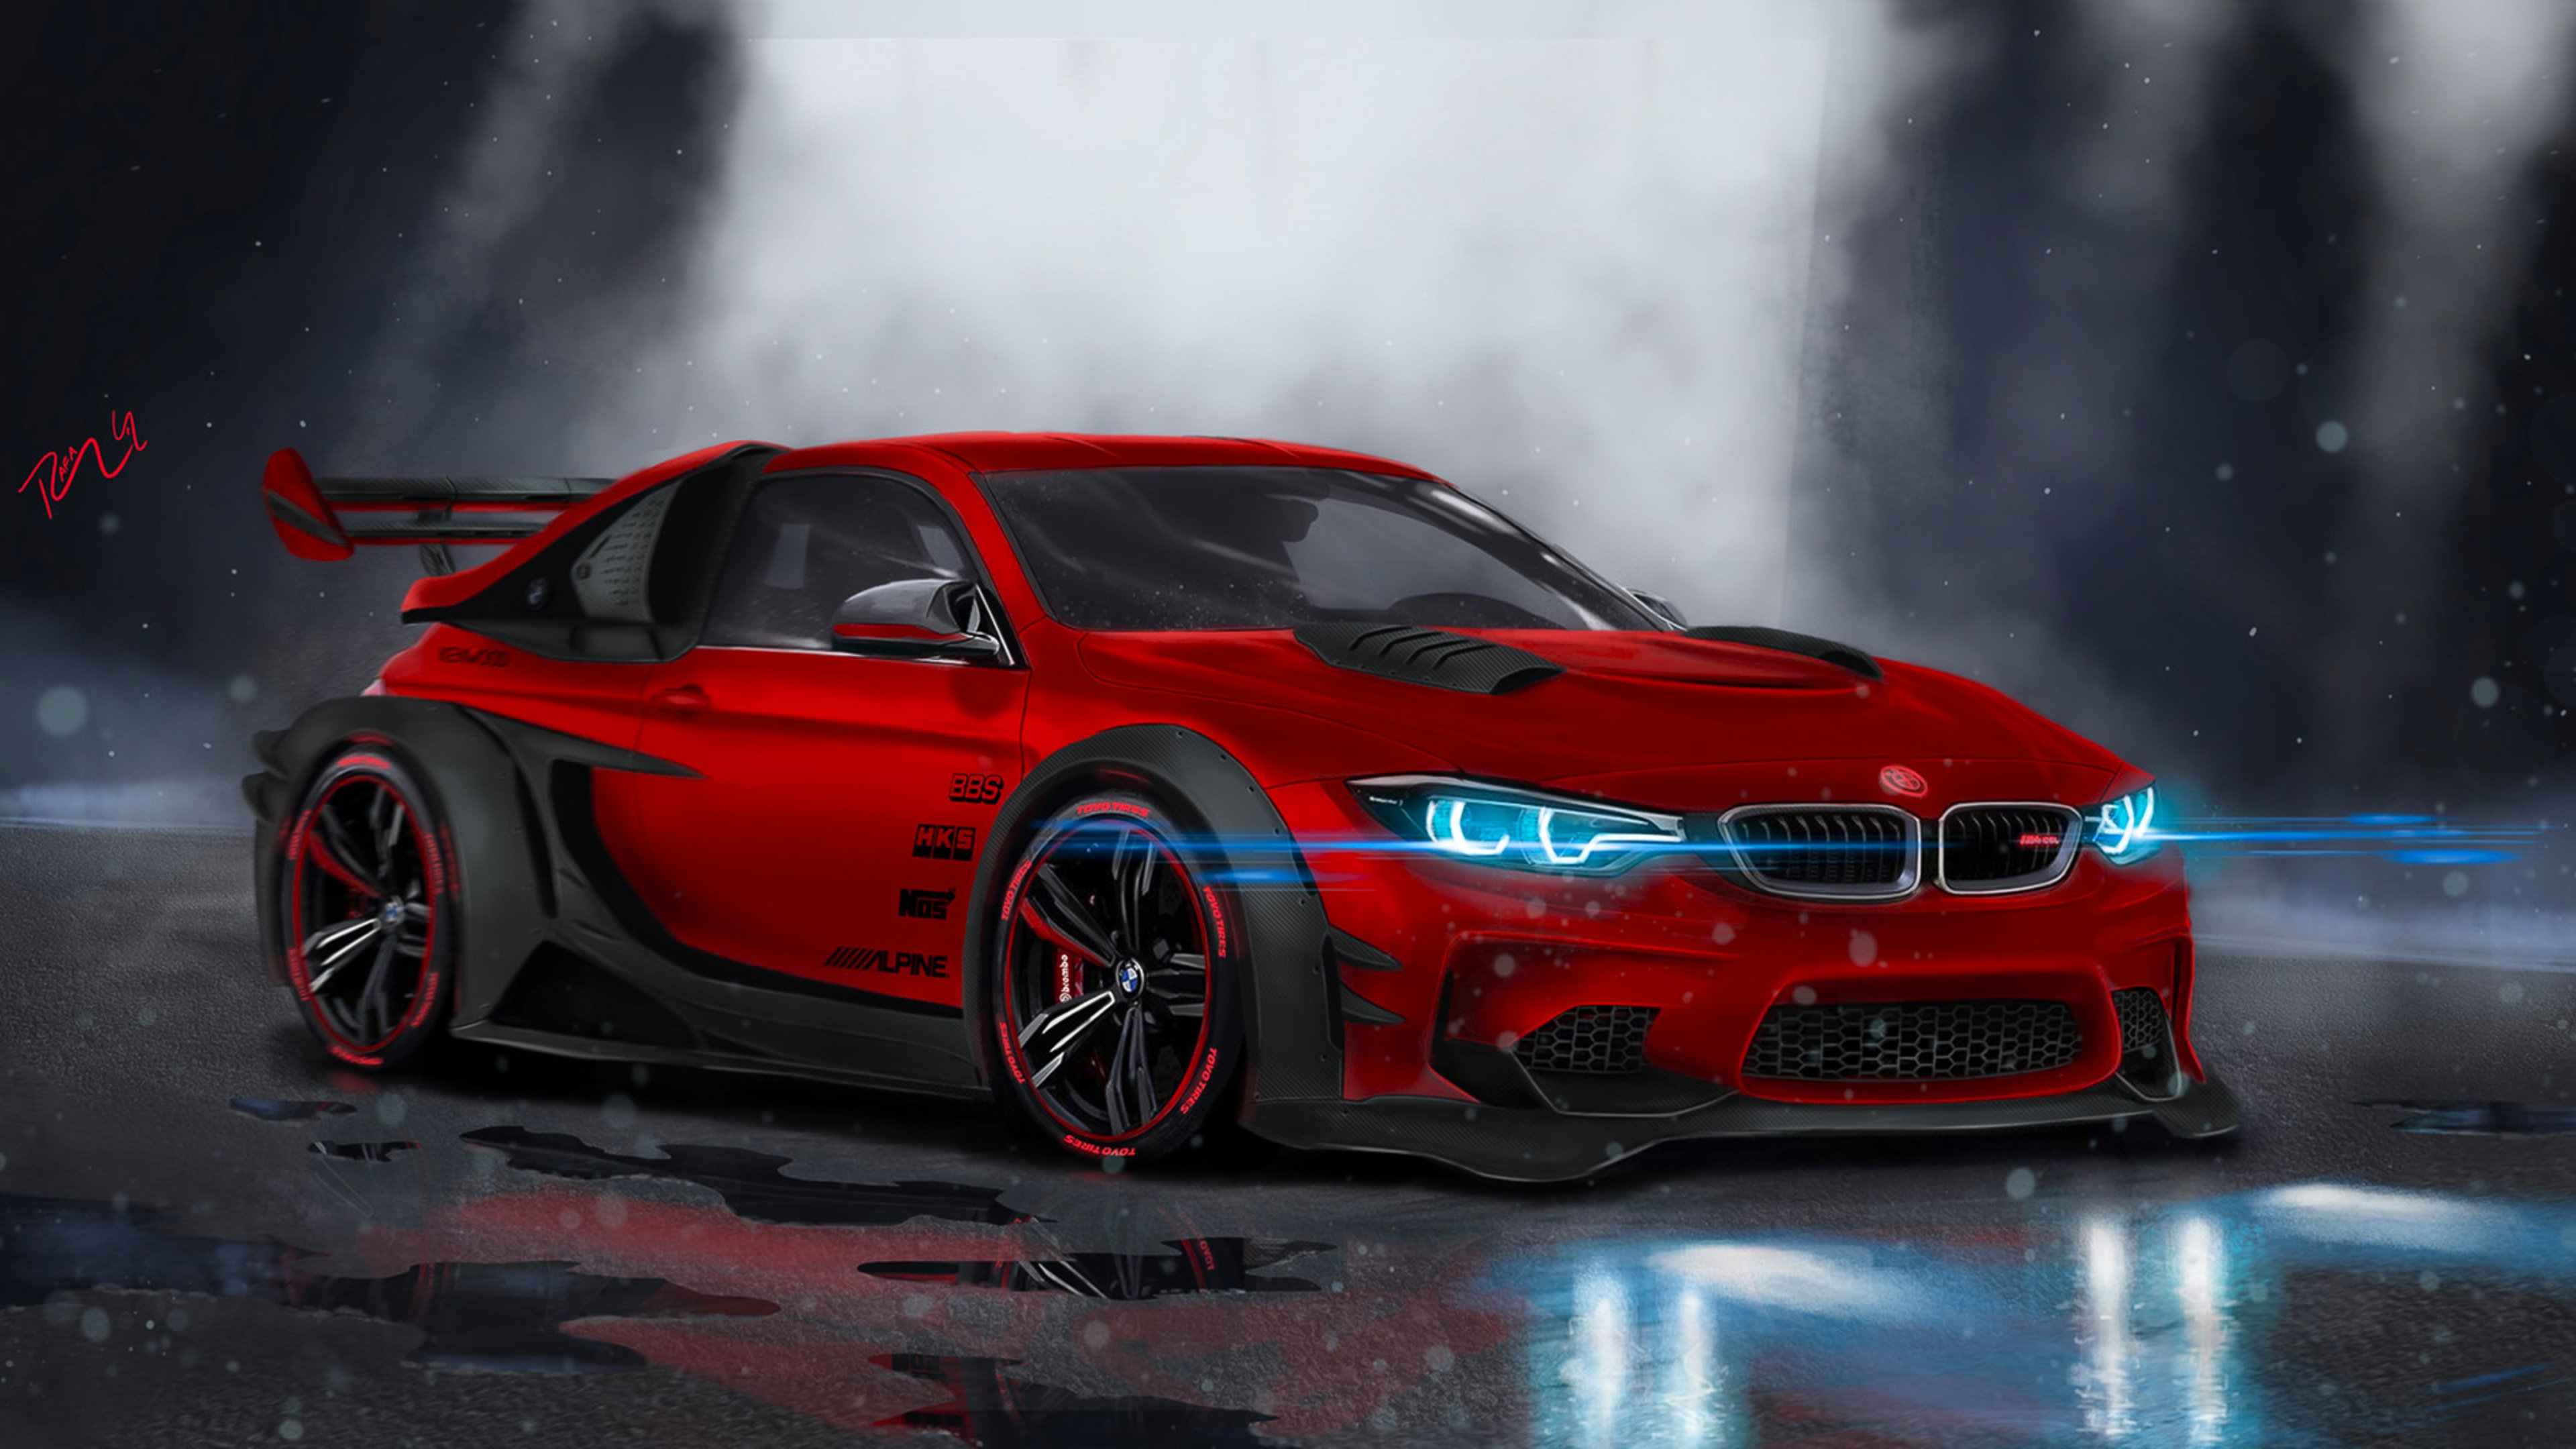 bmw m4 highly modified, hd cars, 4k wallpapers, images, backgrounds